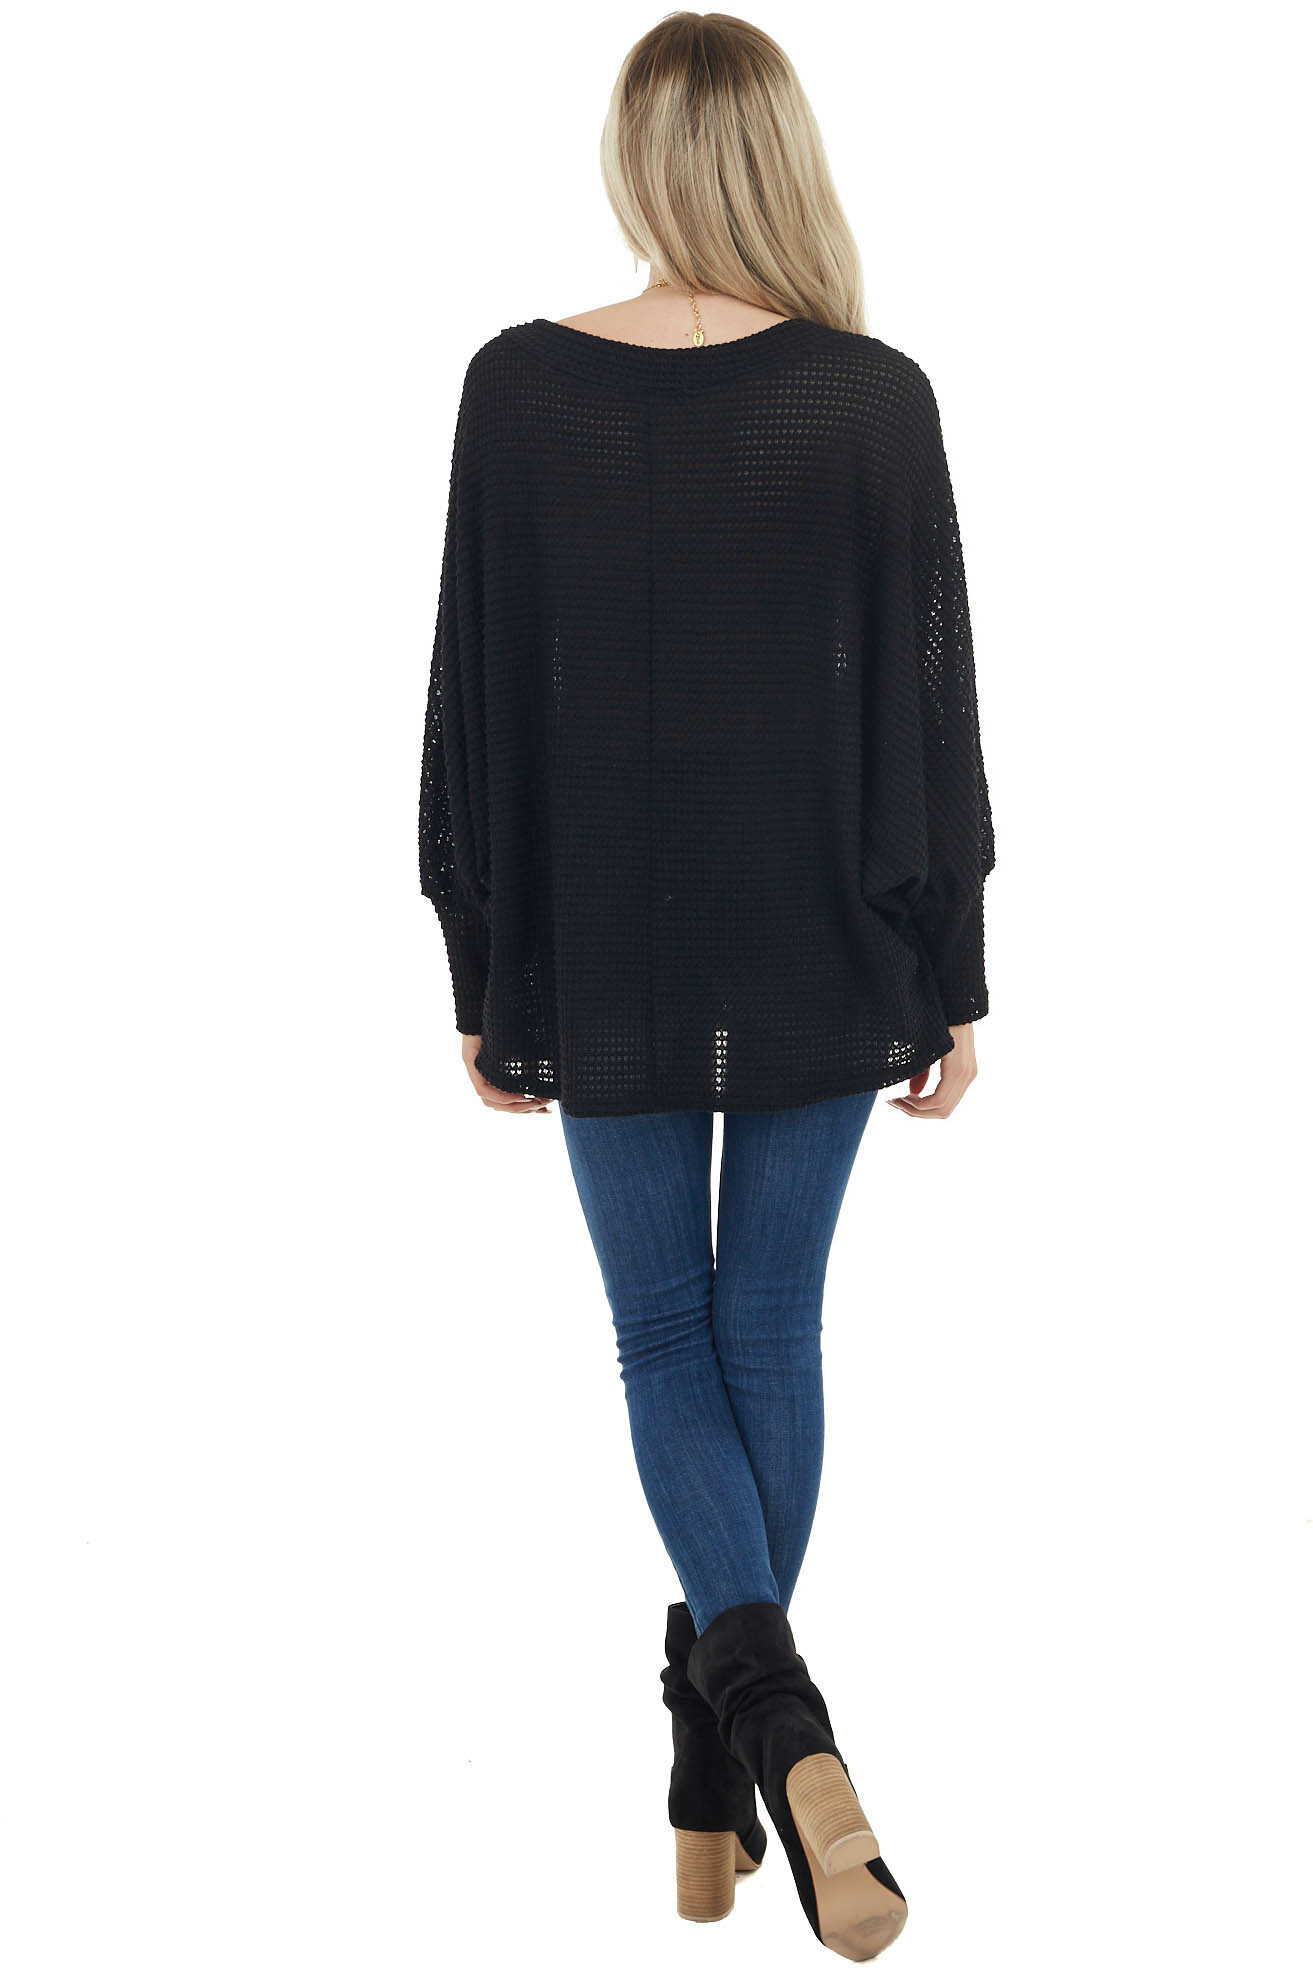 Black Oversized Waffle Knit Top with Long Dolman Sleeves